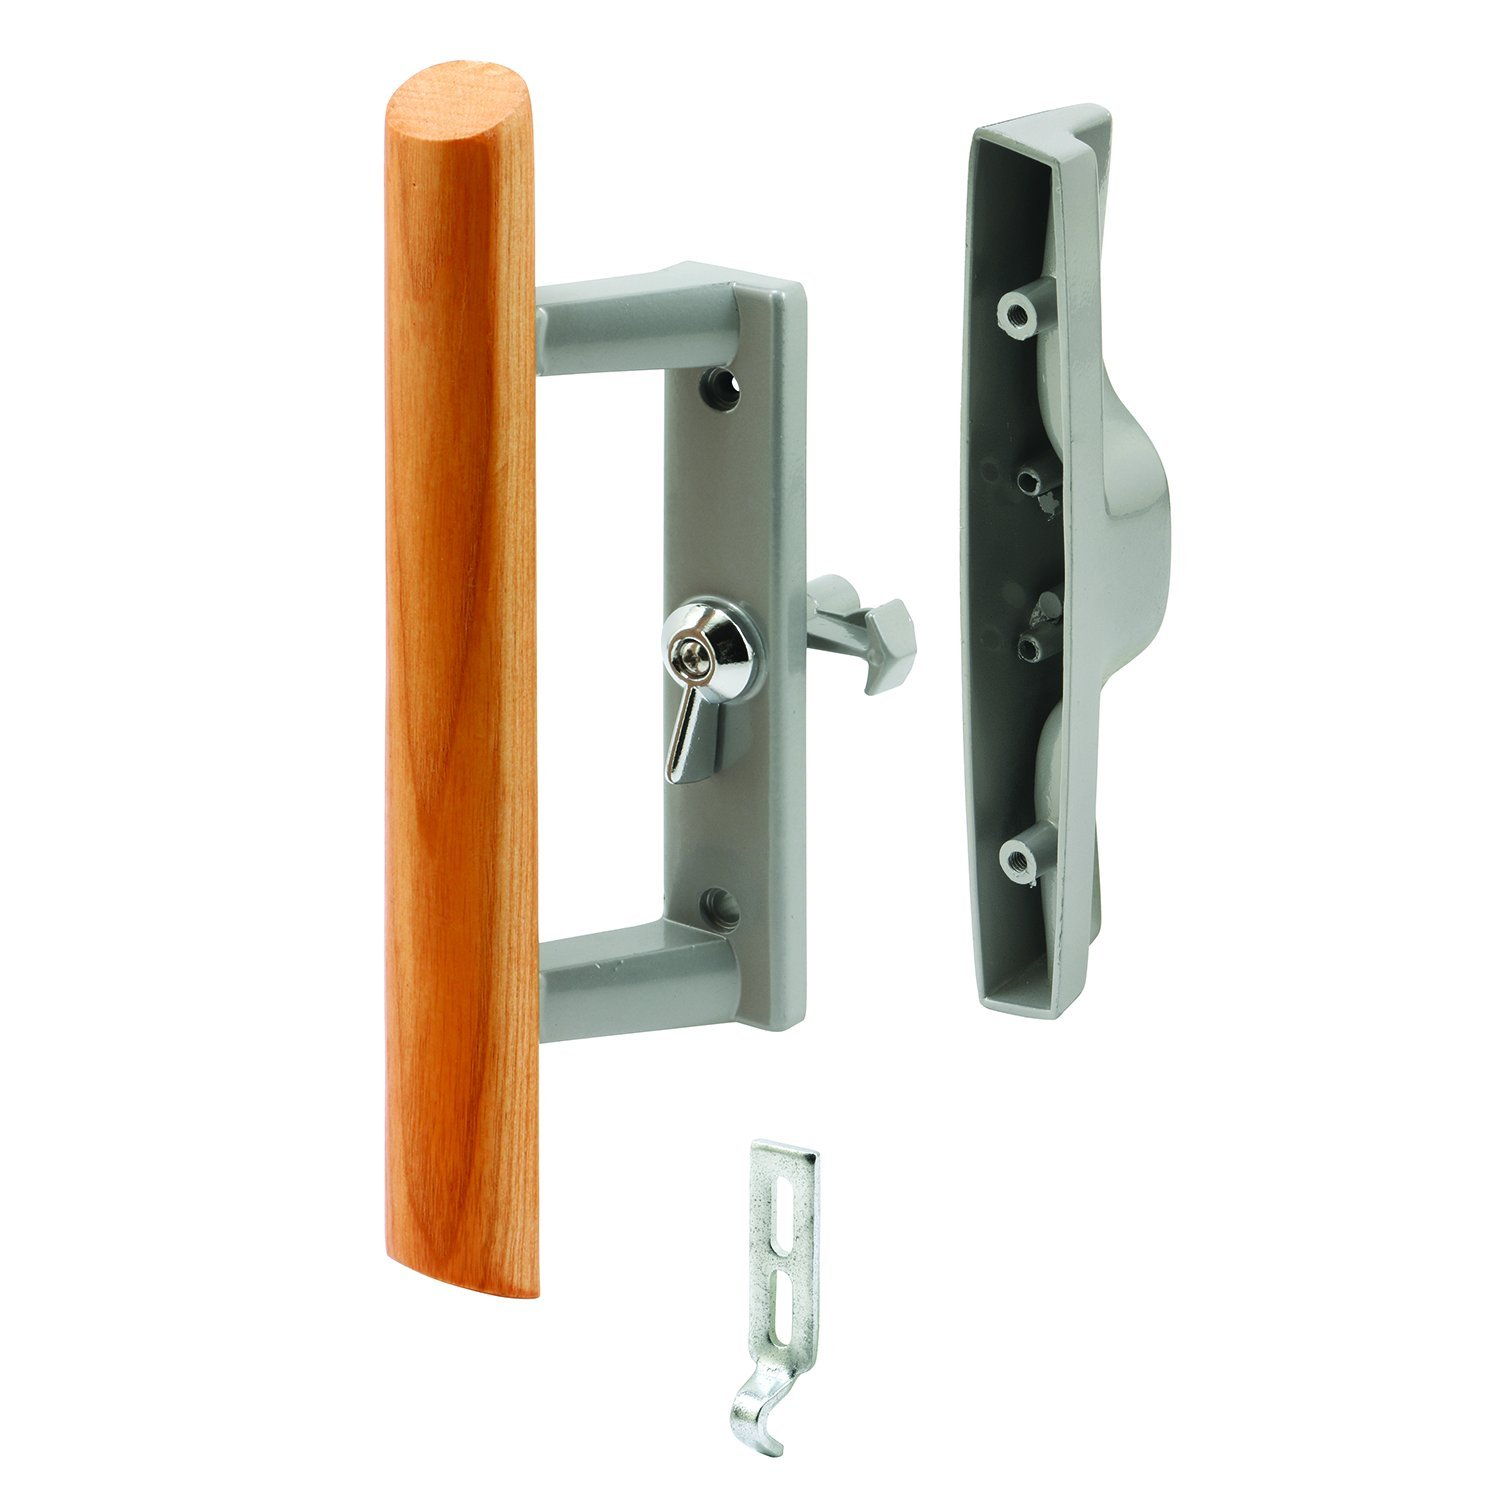 interior hardware door crystal shower schlage front handle sets handles knobs glass commercial handlesets suppliers